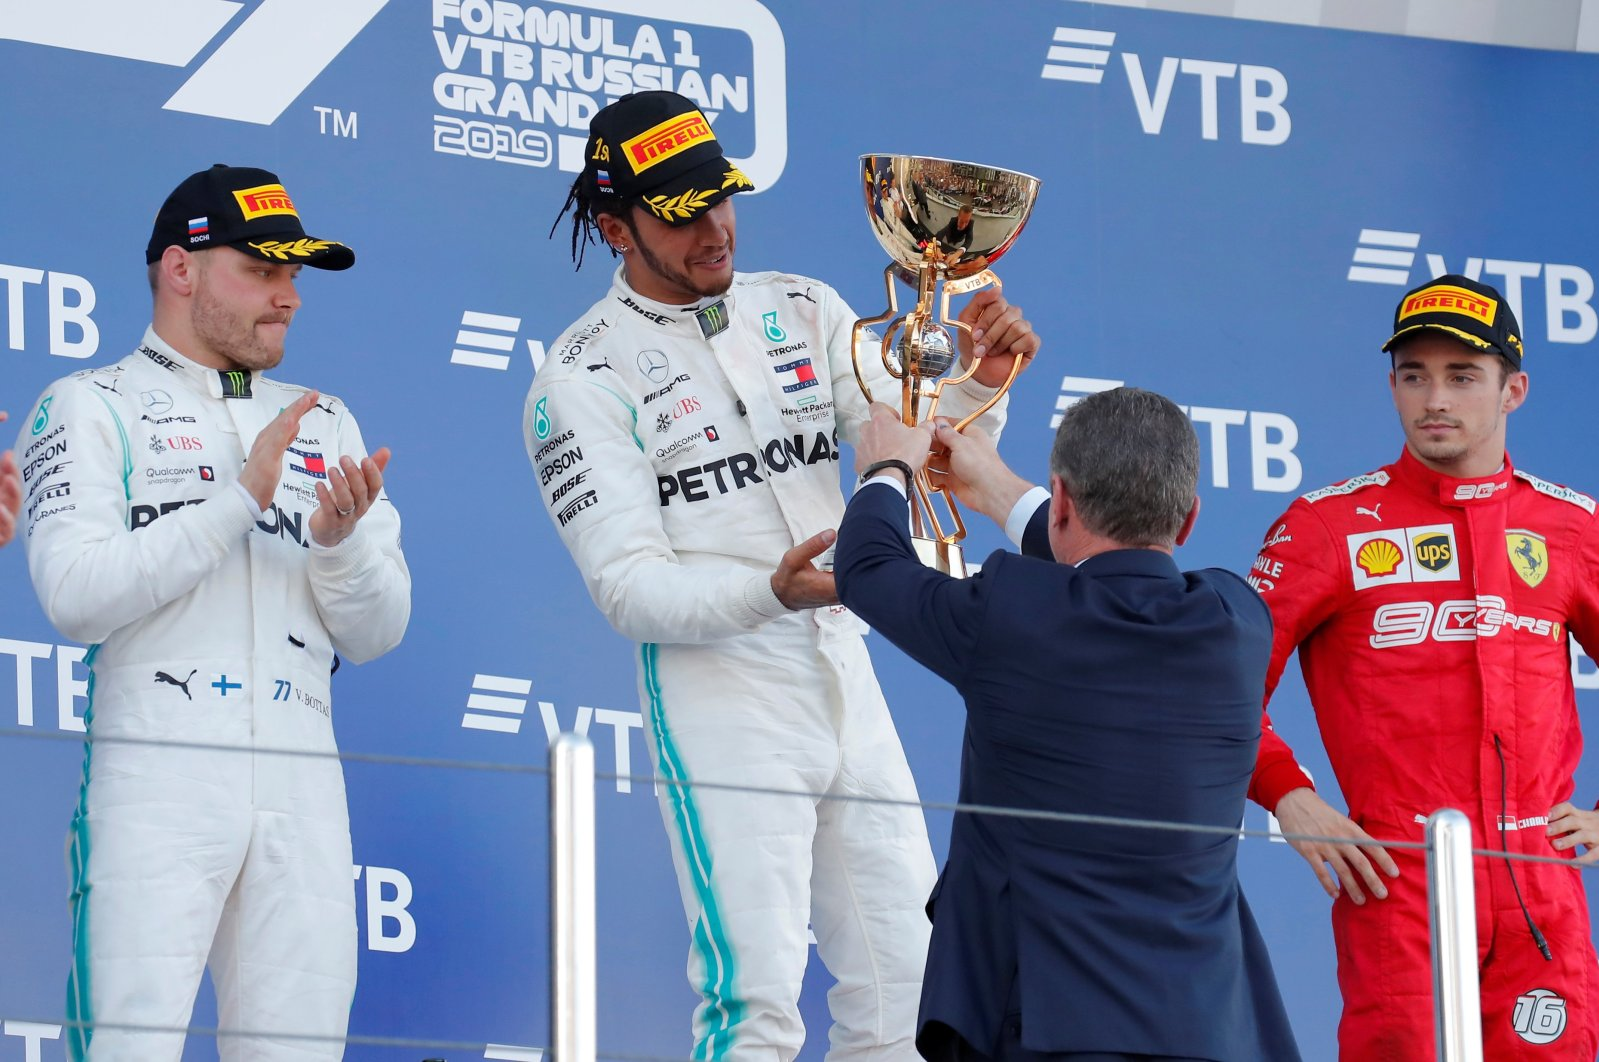 Charles Leclerc (R) stands next to Lewis Hamilton and Valtteri Bottas as Hamilton receives a trophy, in Sochi, Russia, Sept. 29, 2019. (Reuters Photo)